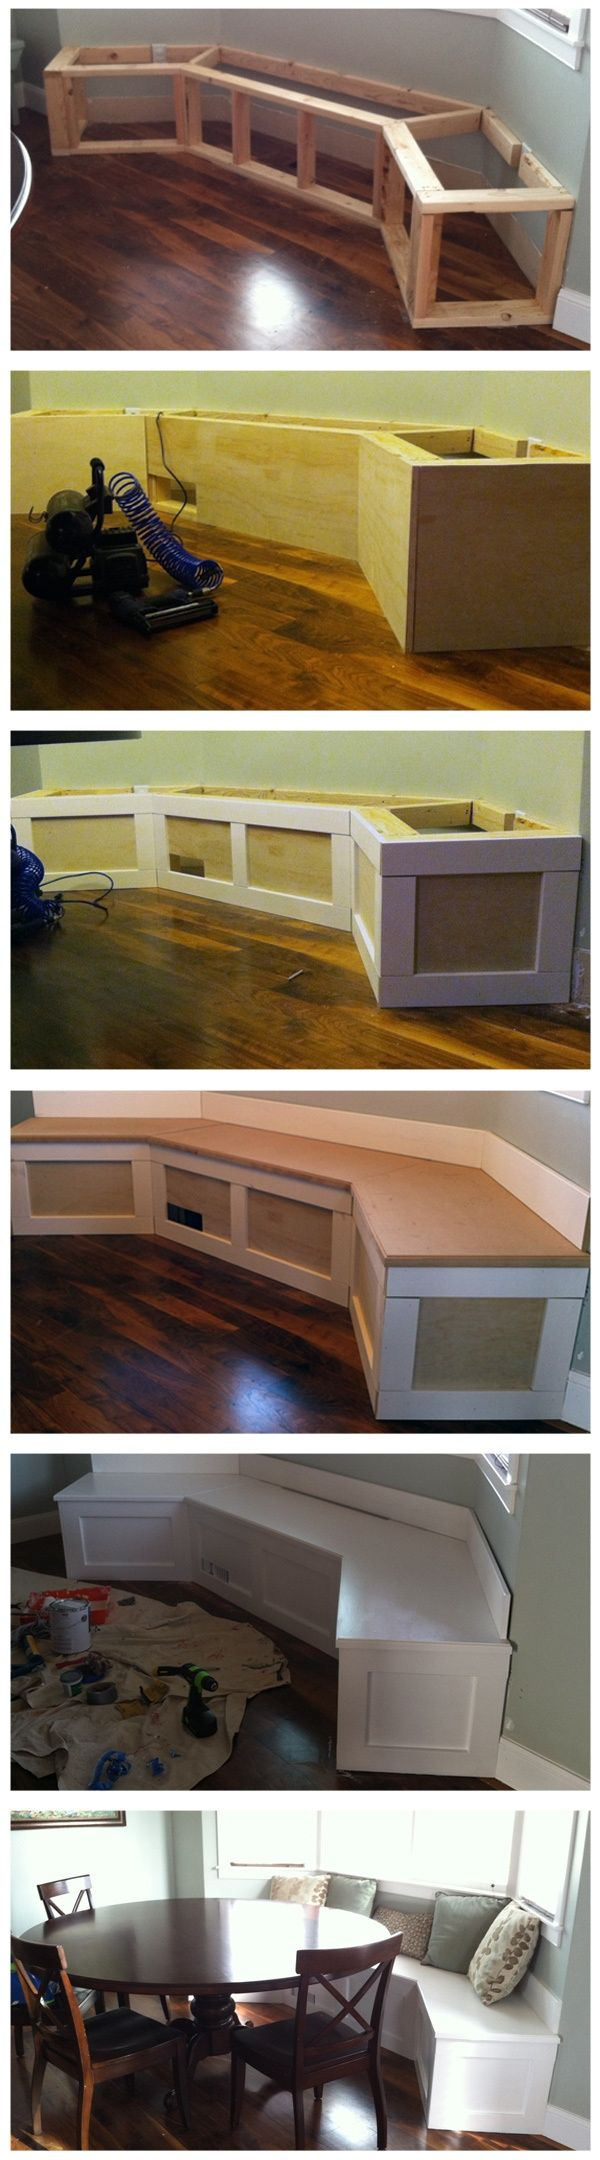 DIY Storage seating